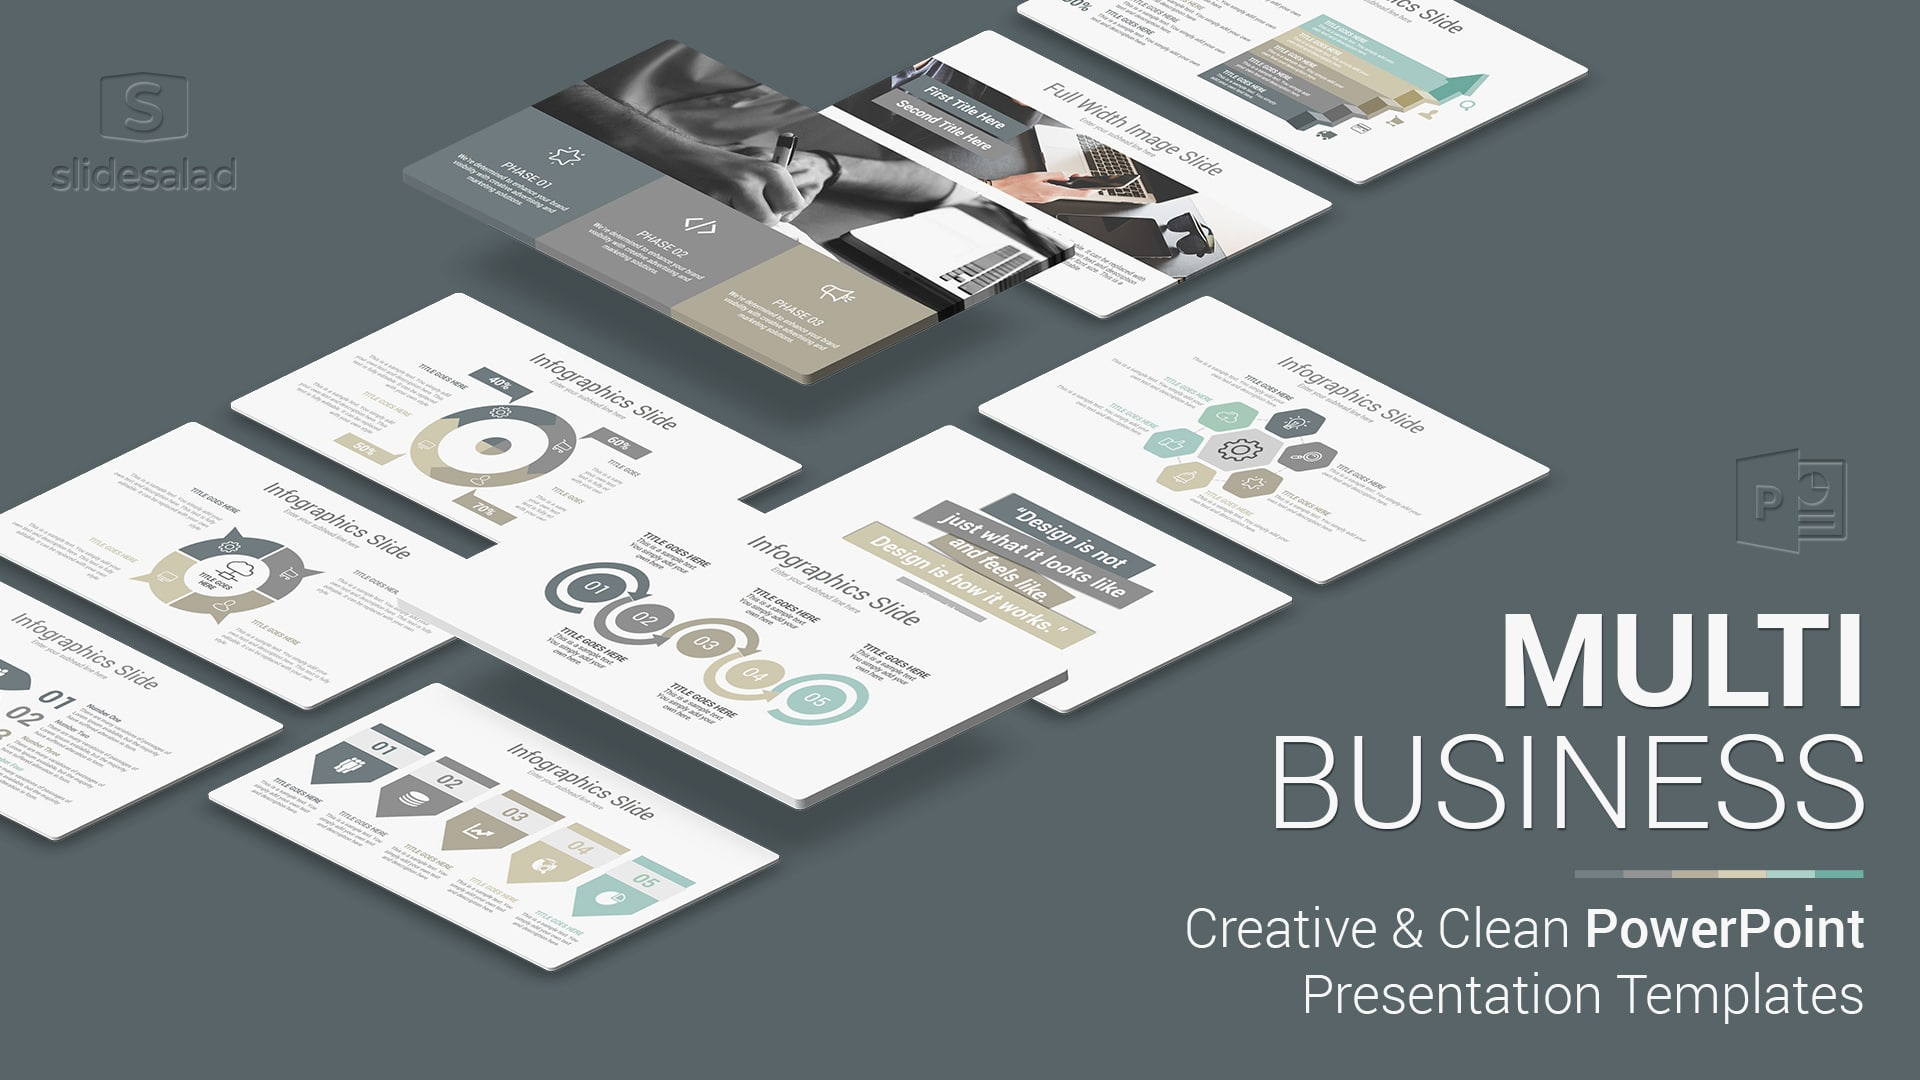 Multi Business PowerPoint Presentation Template – Multipurpose PowerPoint Presentation Template